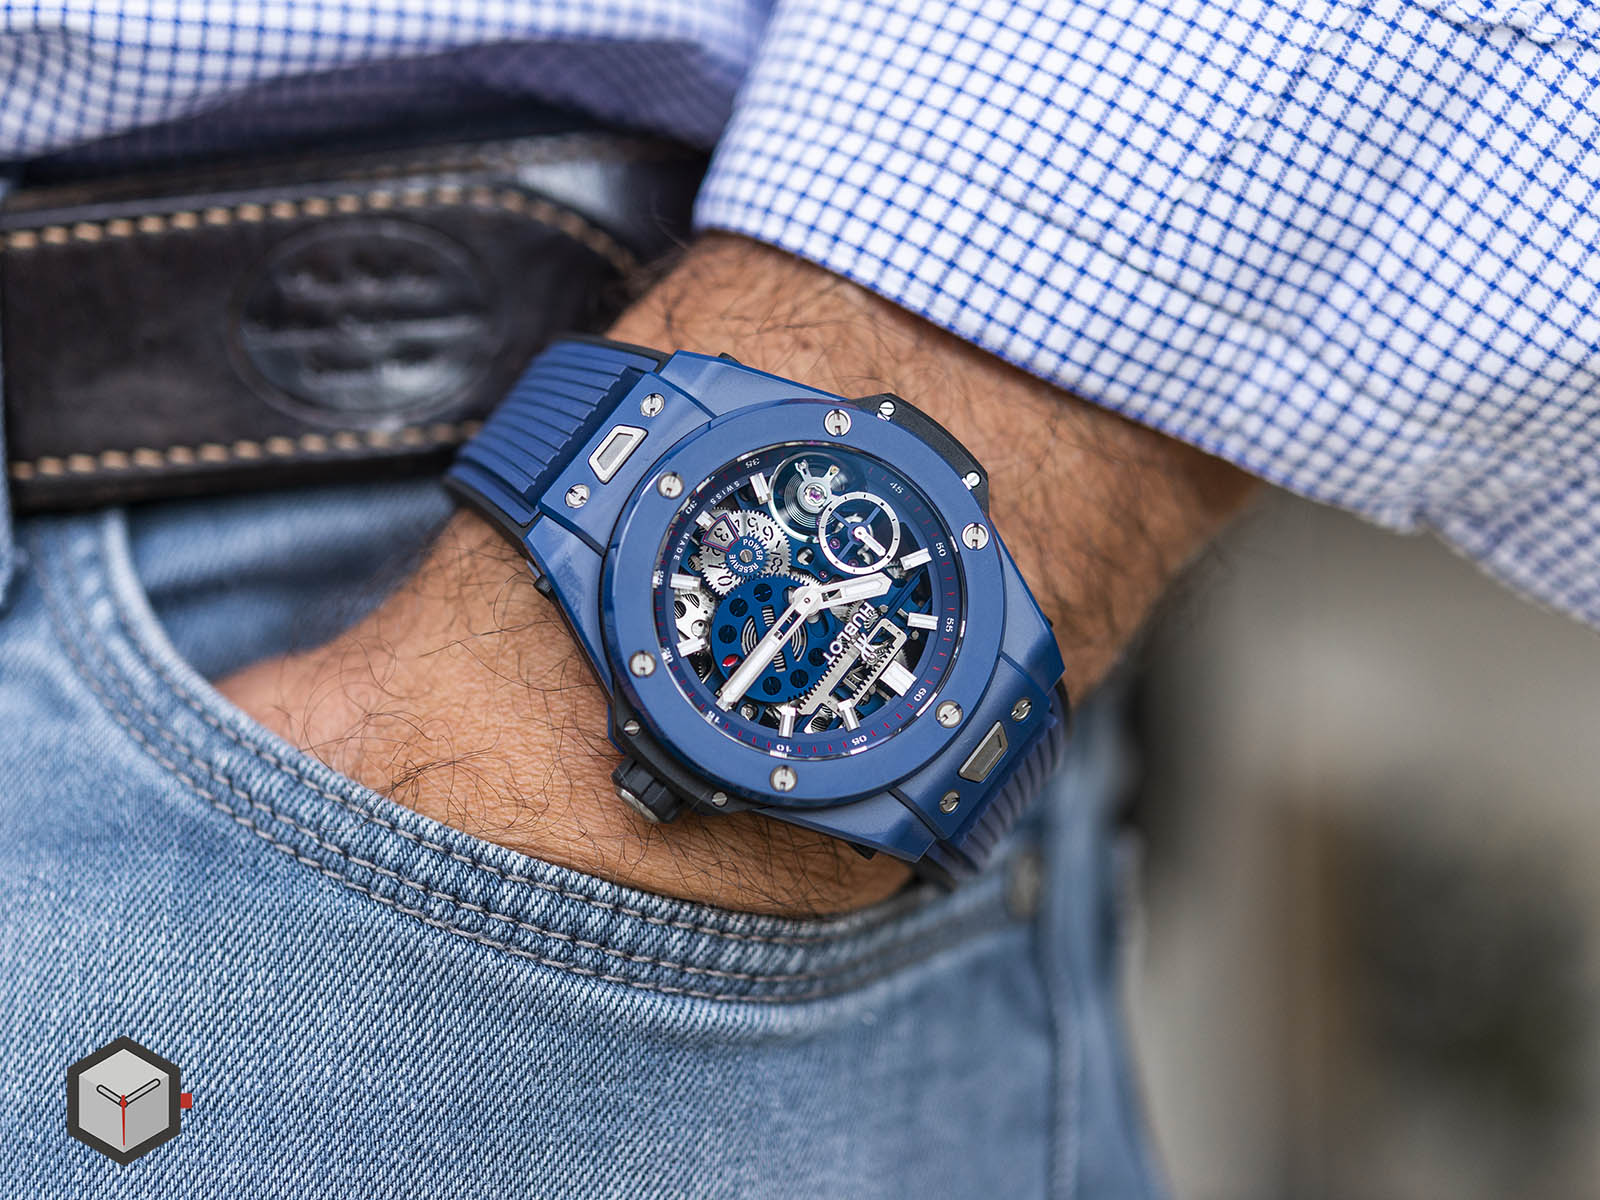 414-ex-5123-rx-hublot-big-bang-meca-10-ceramic-blue-45mm-11.jpg